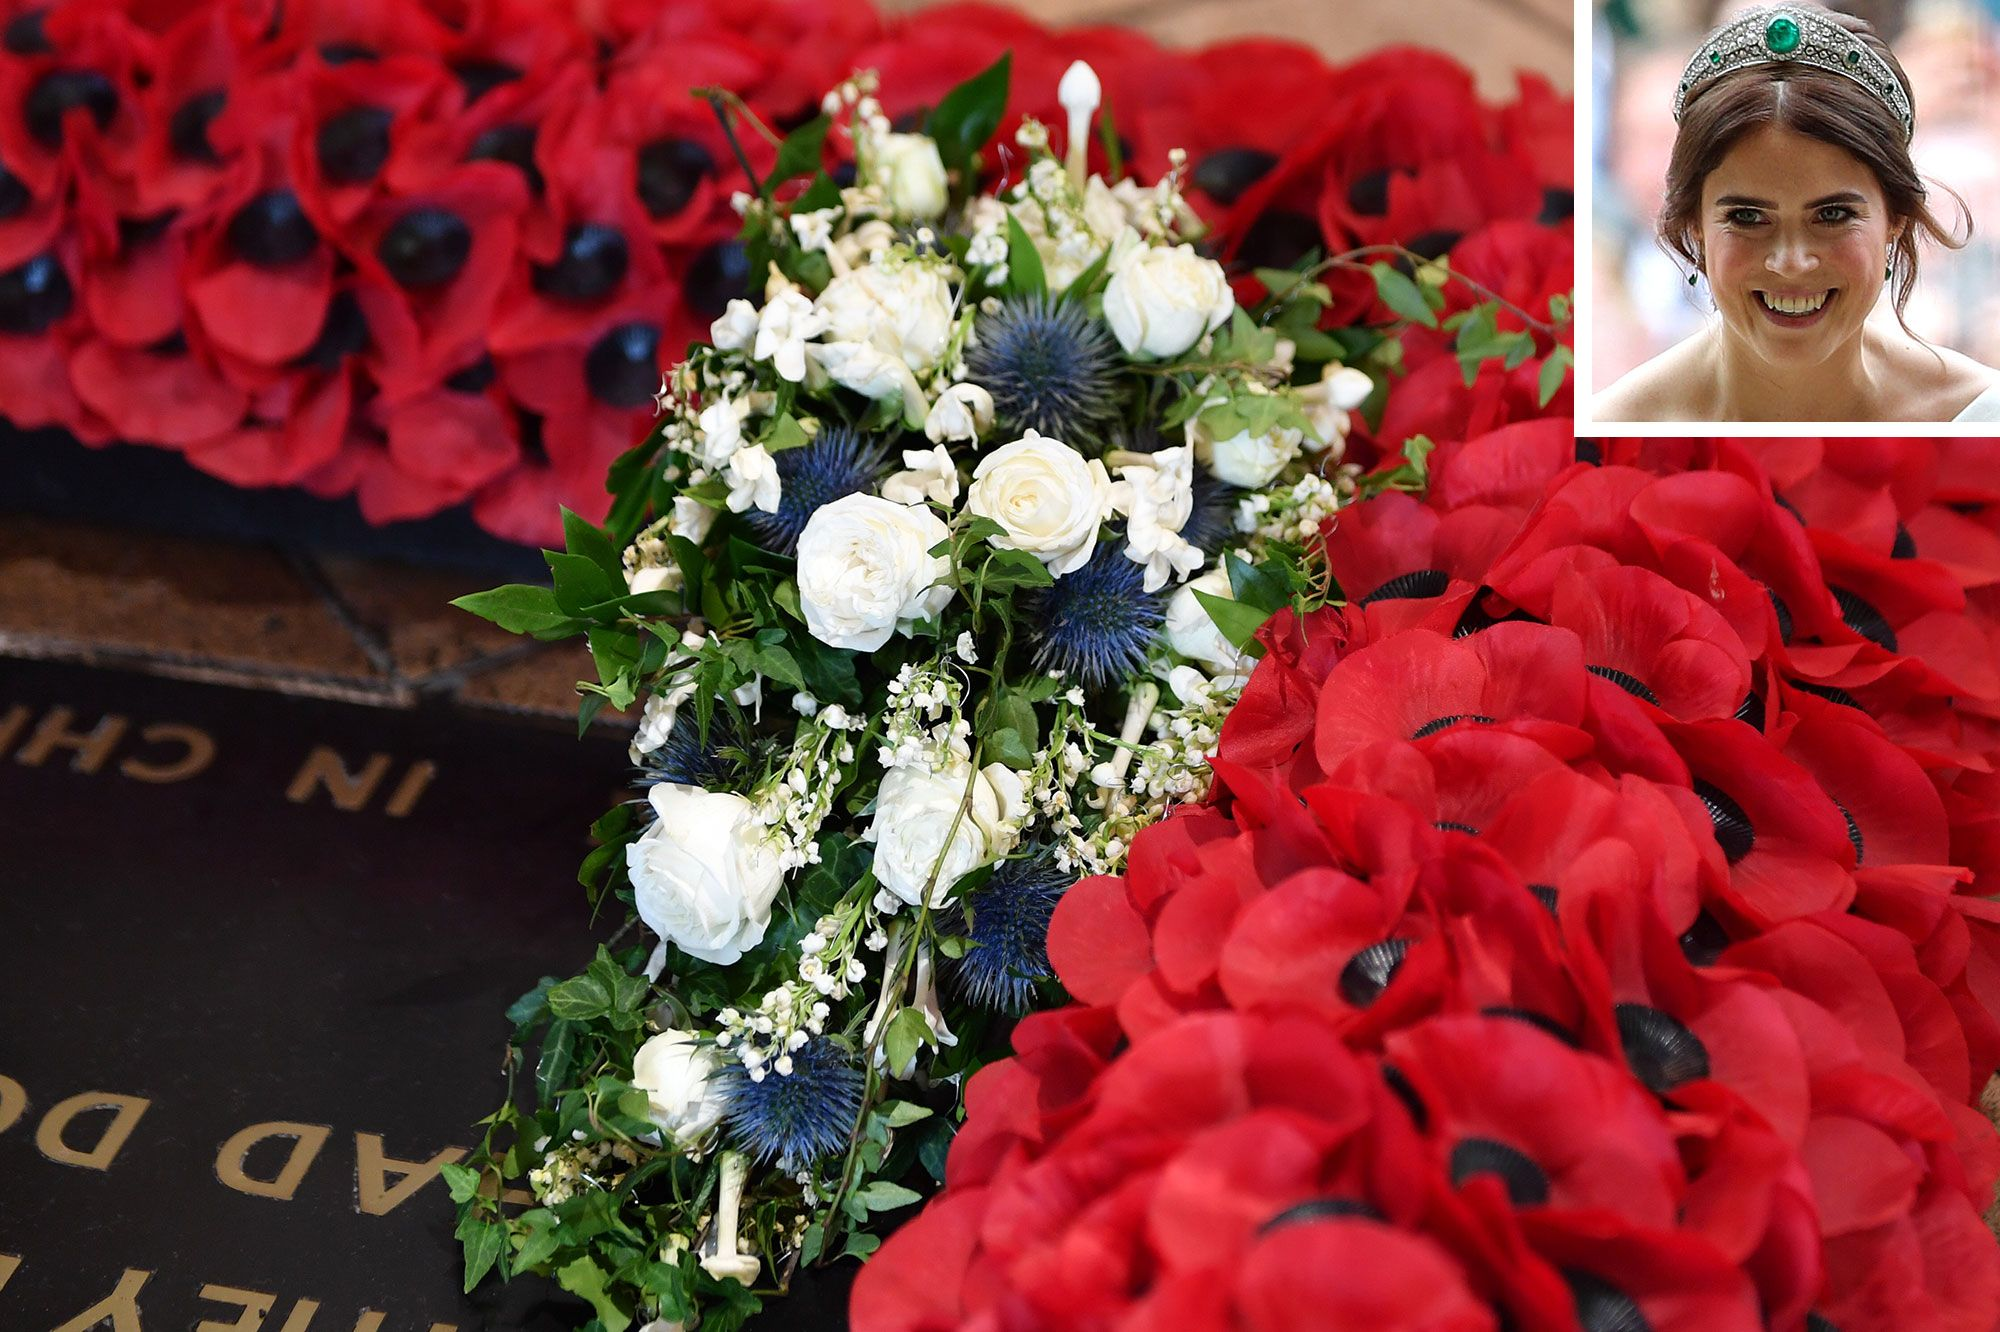 Princess Eugenie S Wedding Bouquet Placed On The Grave Of The